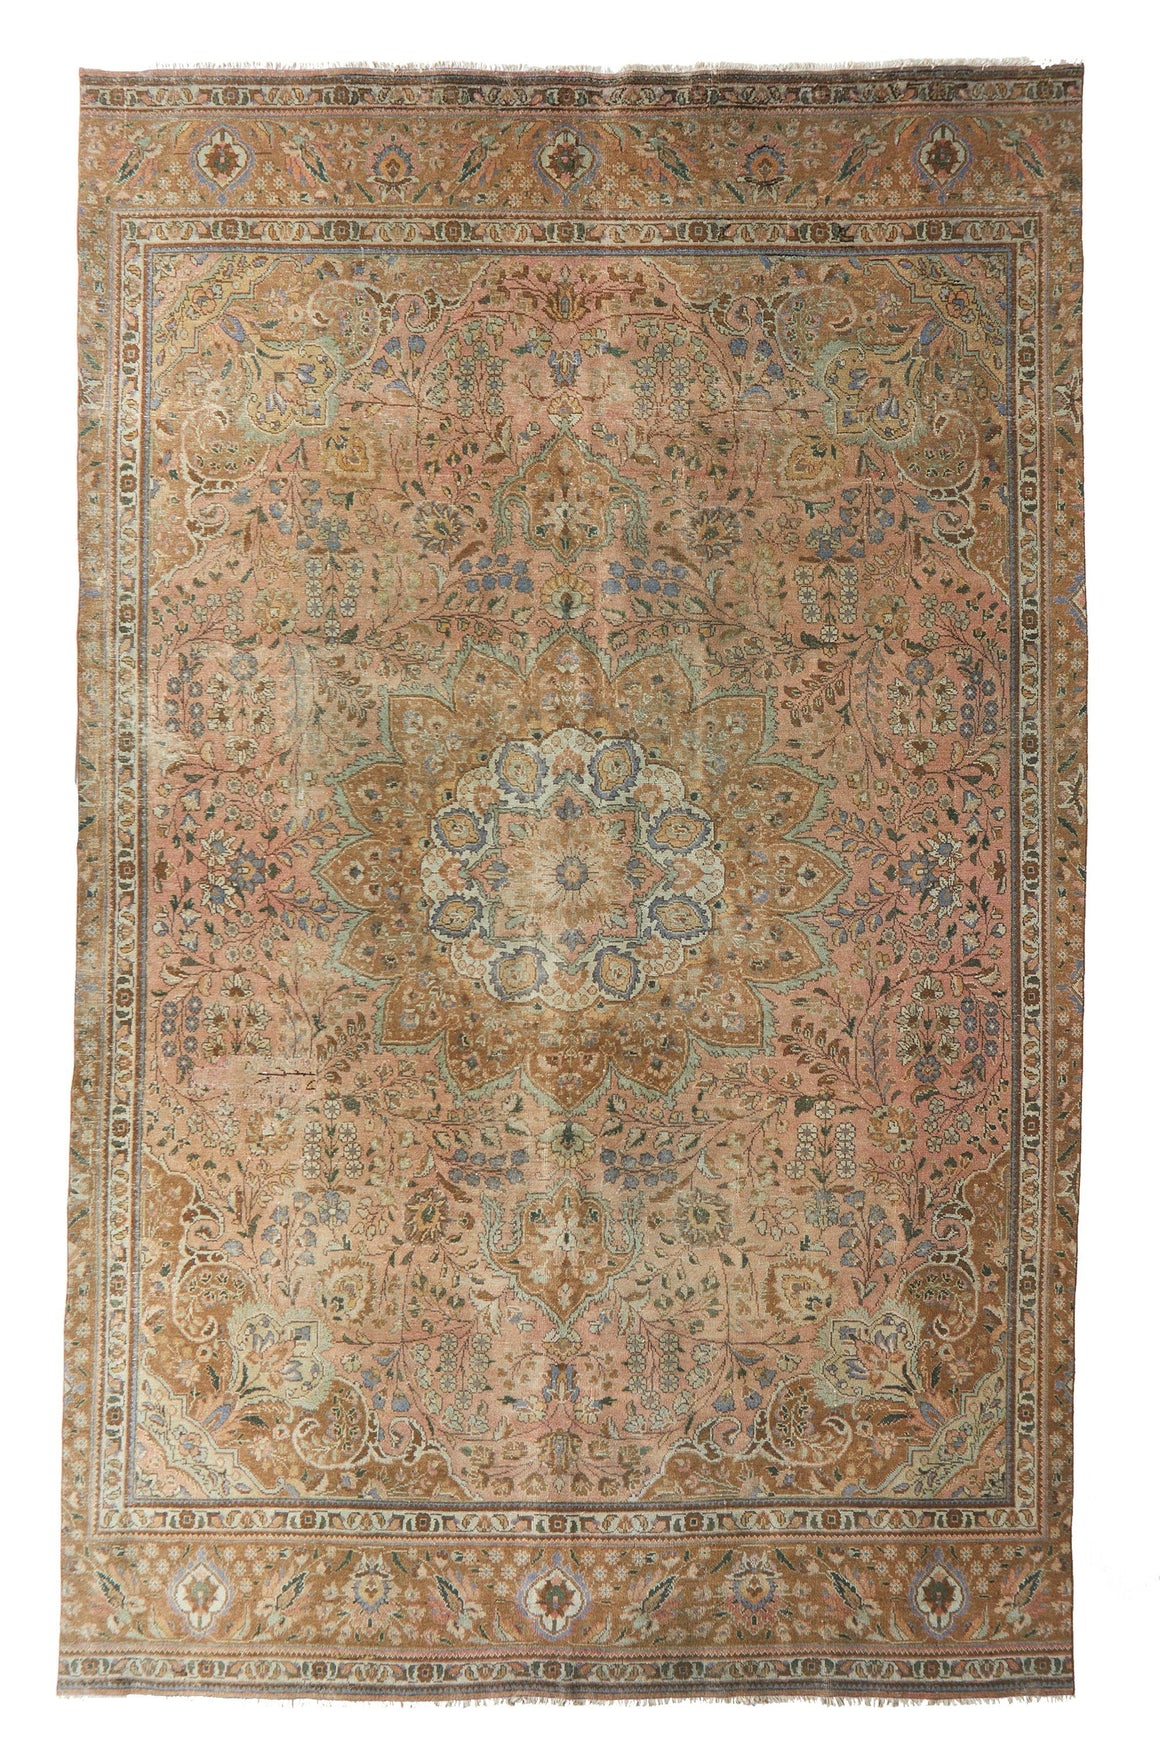 "'Garden Party' Large Vintage Area Rug - 8' x 12'8"" - Canary Lane - Curated Textiles"